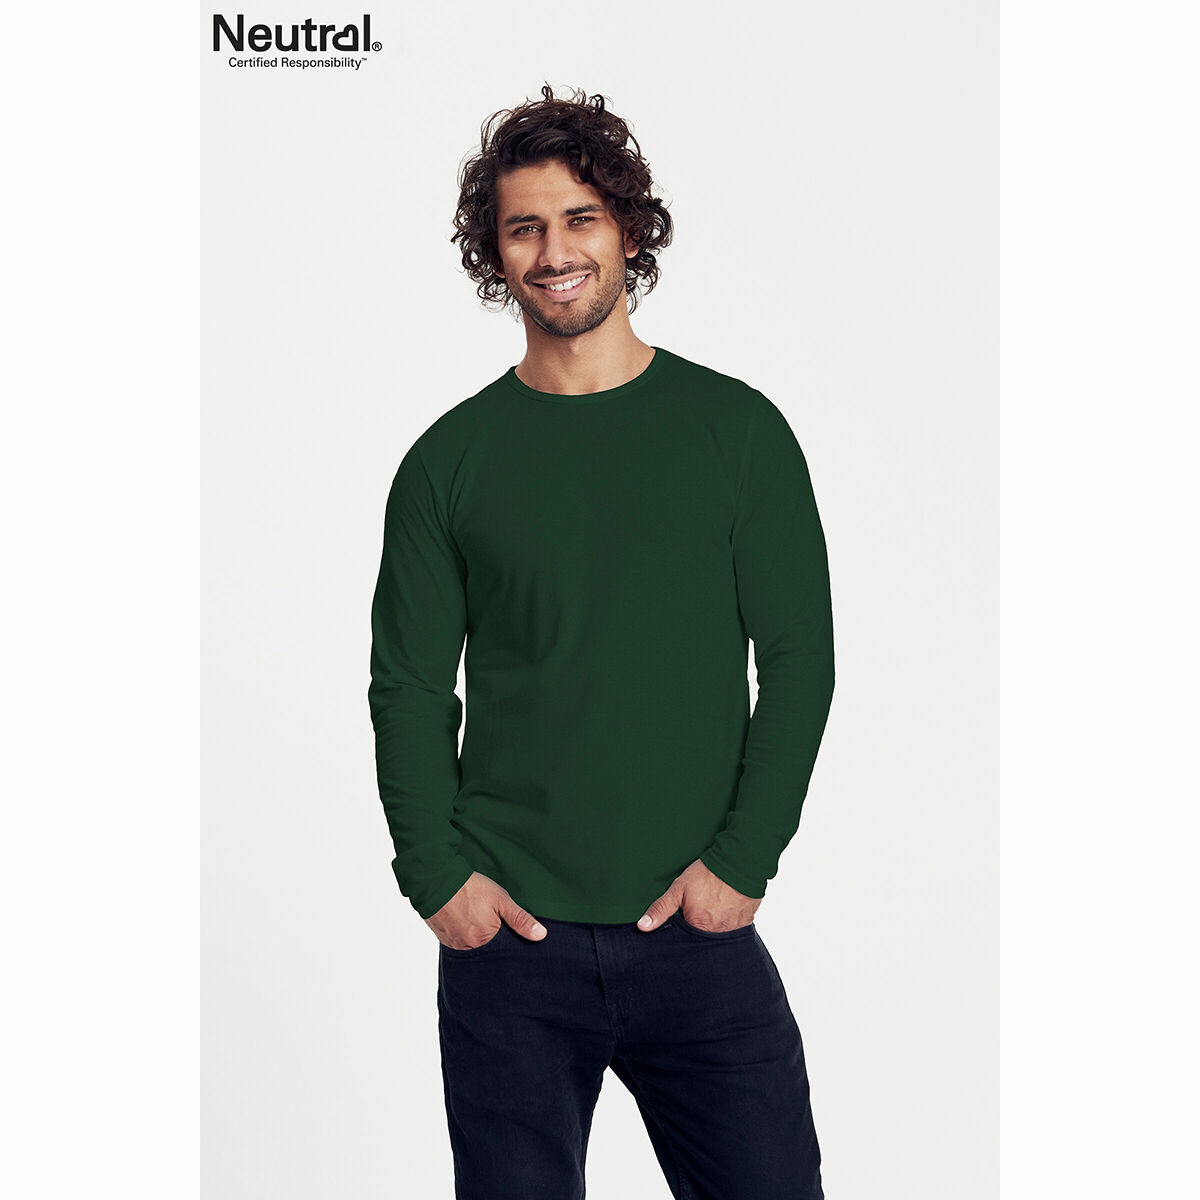 Neutral Long Sleeve Organic Men's T-shirt Green